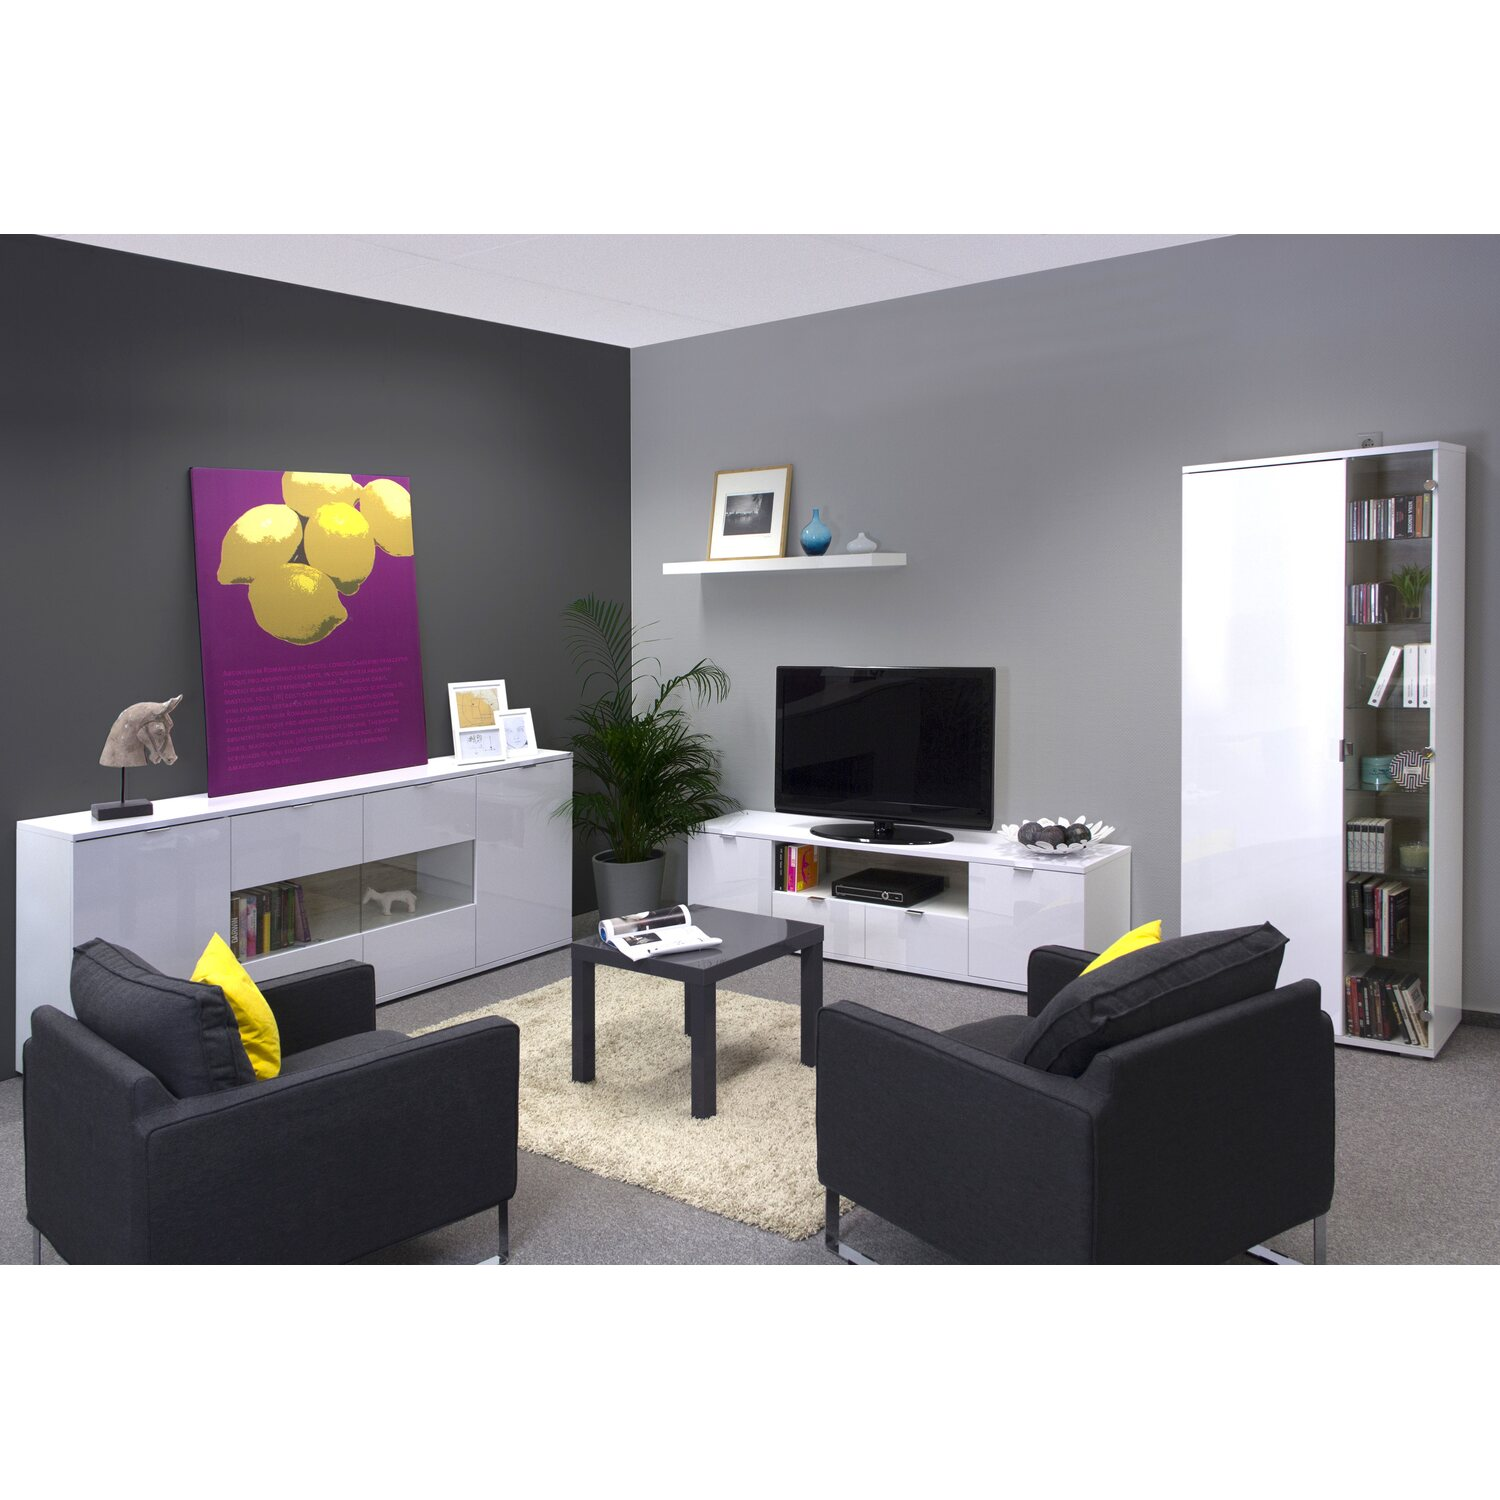 flex well wohnzimmer komplett set kaufen bei obi. Black Bedroom Furniture Sets. Home Design Ideas